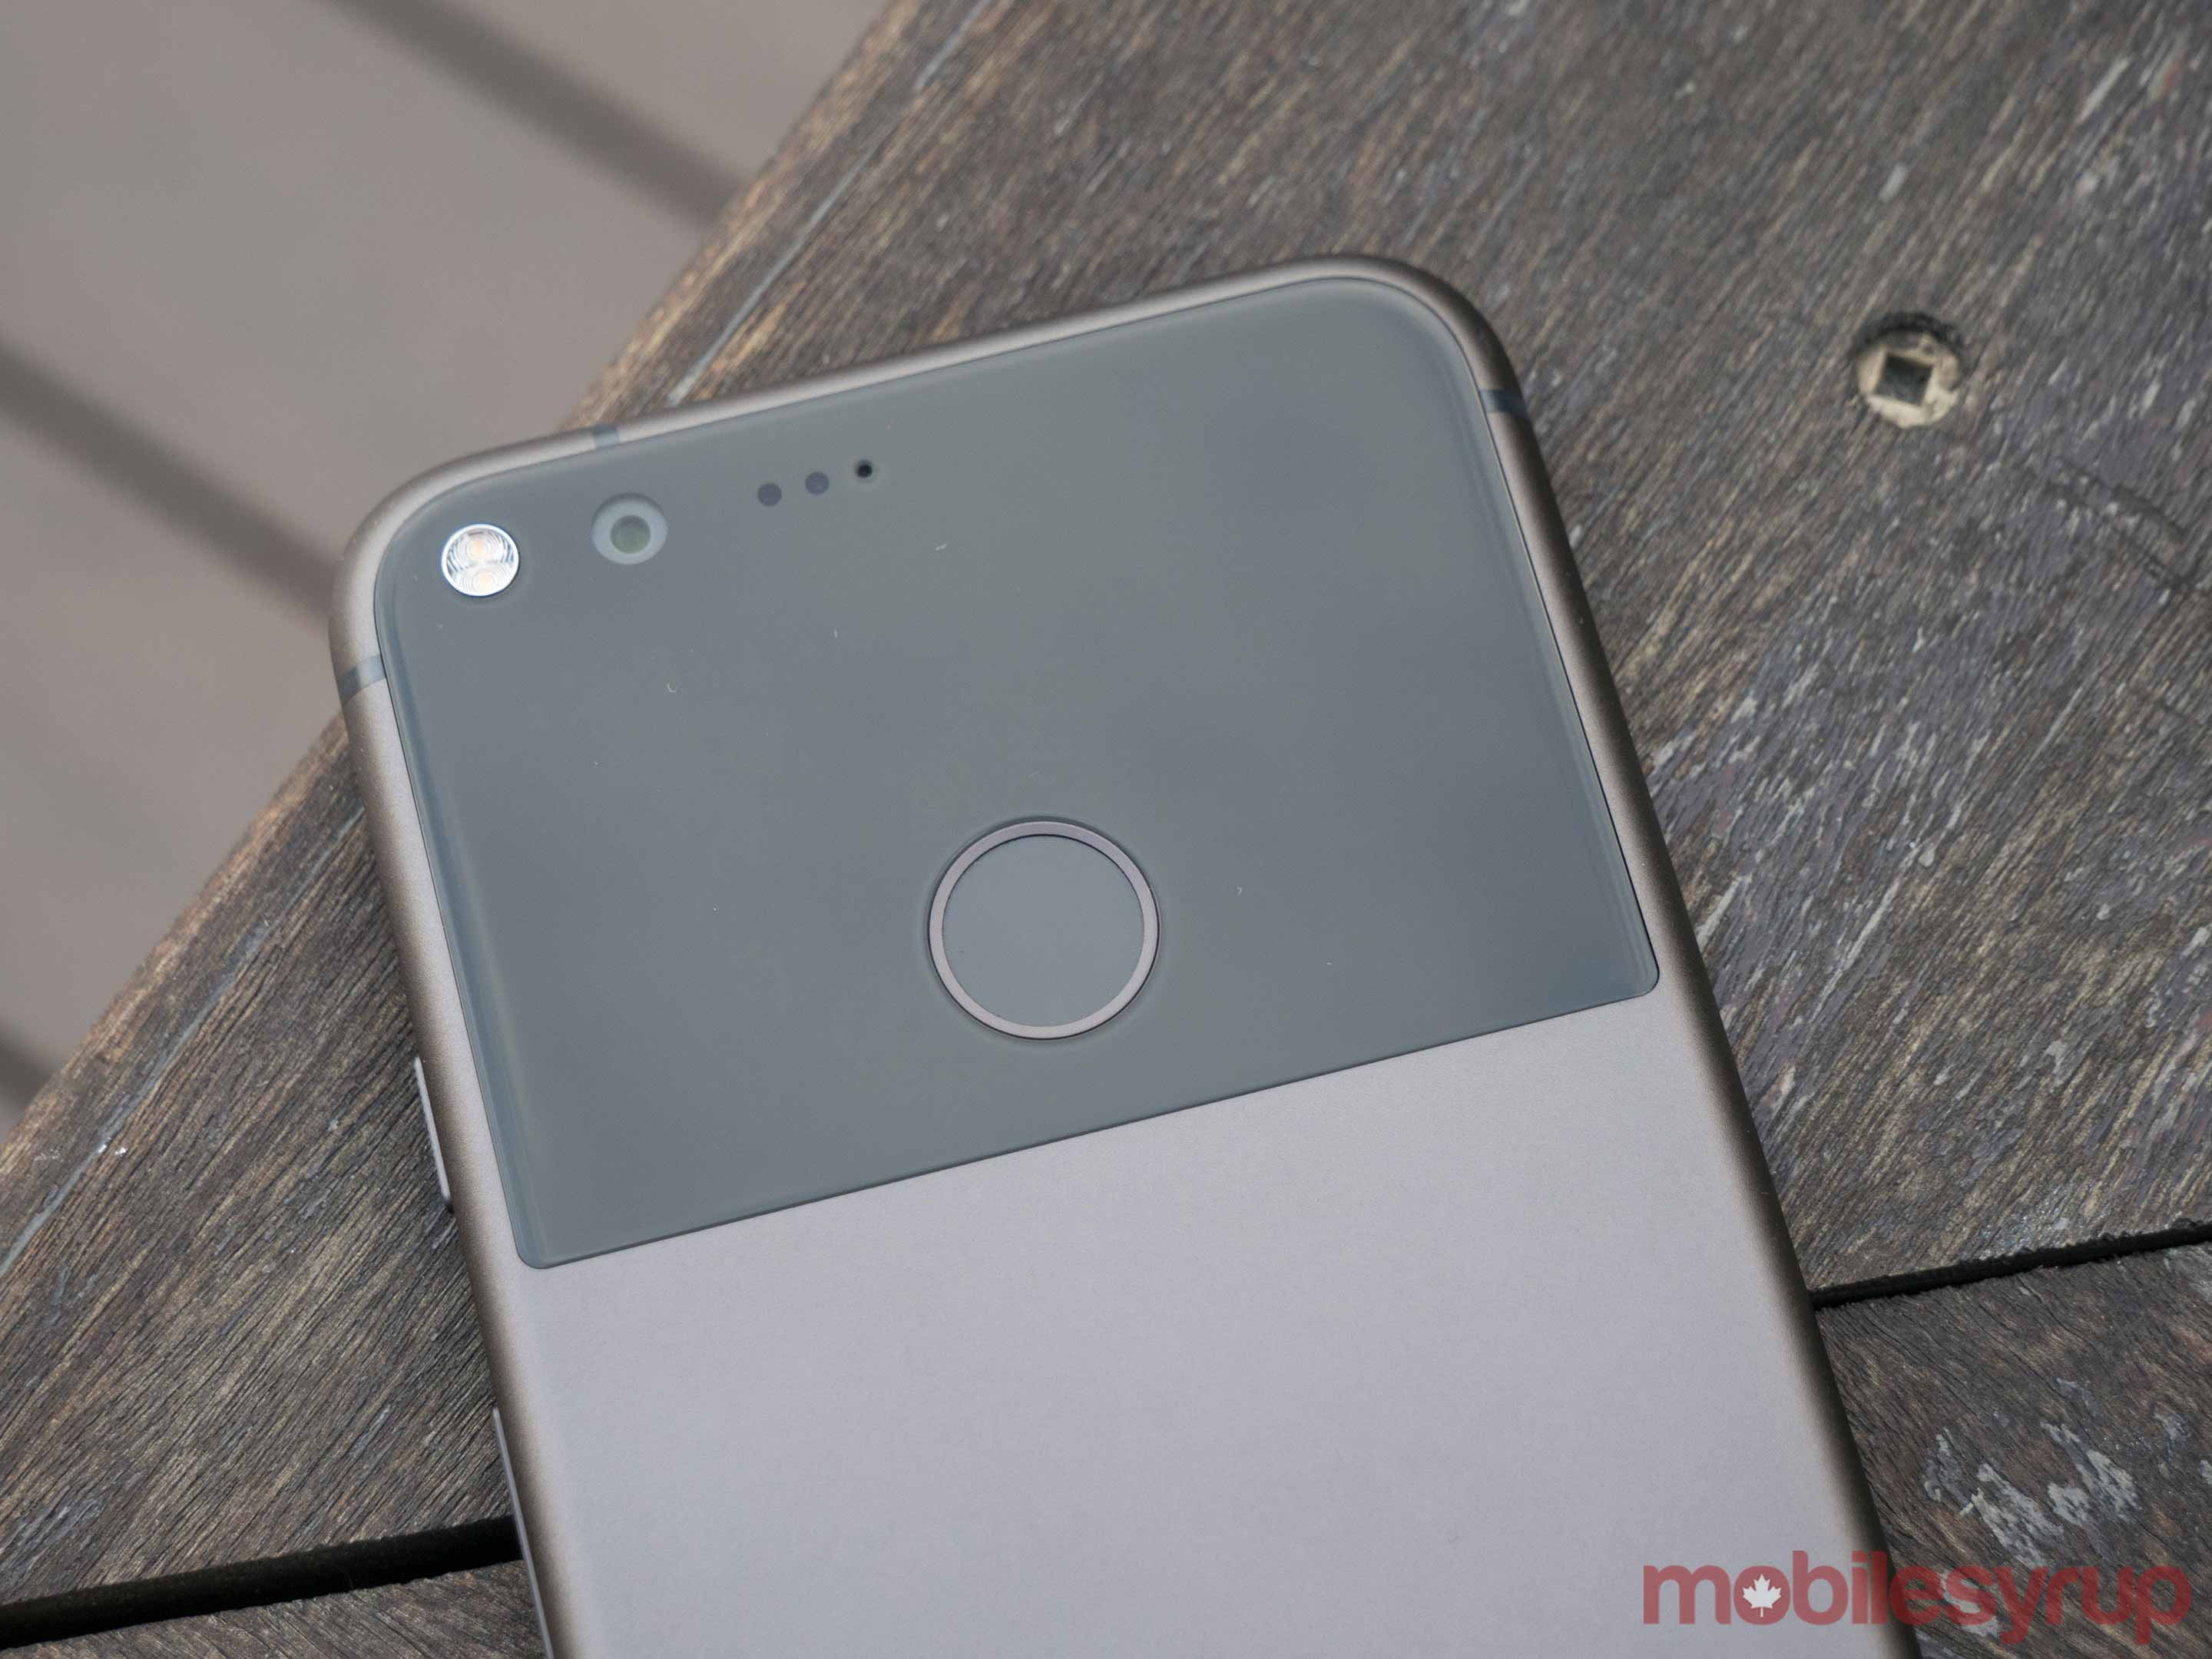 The back of the Google Pixel